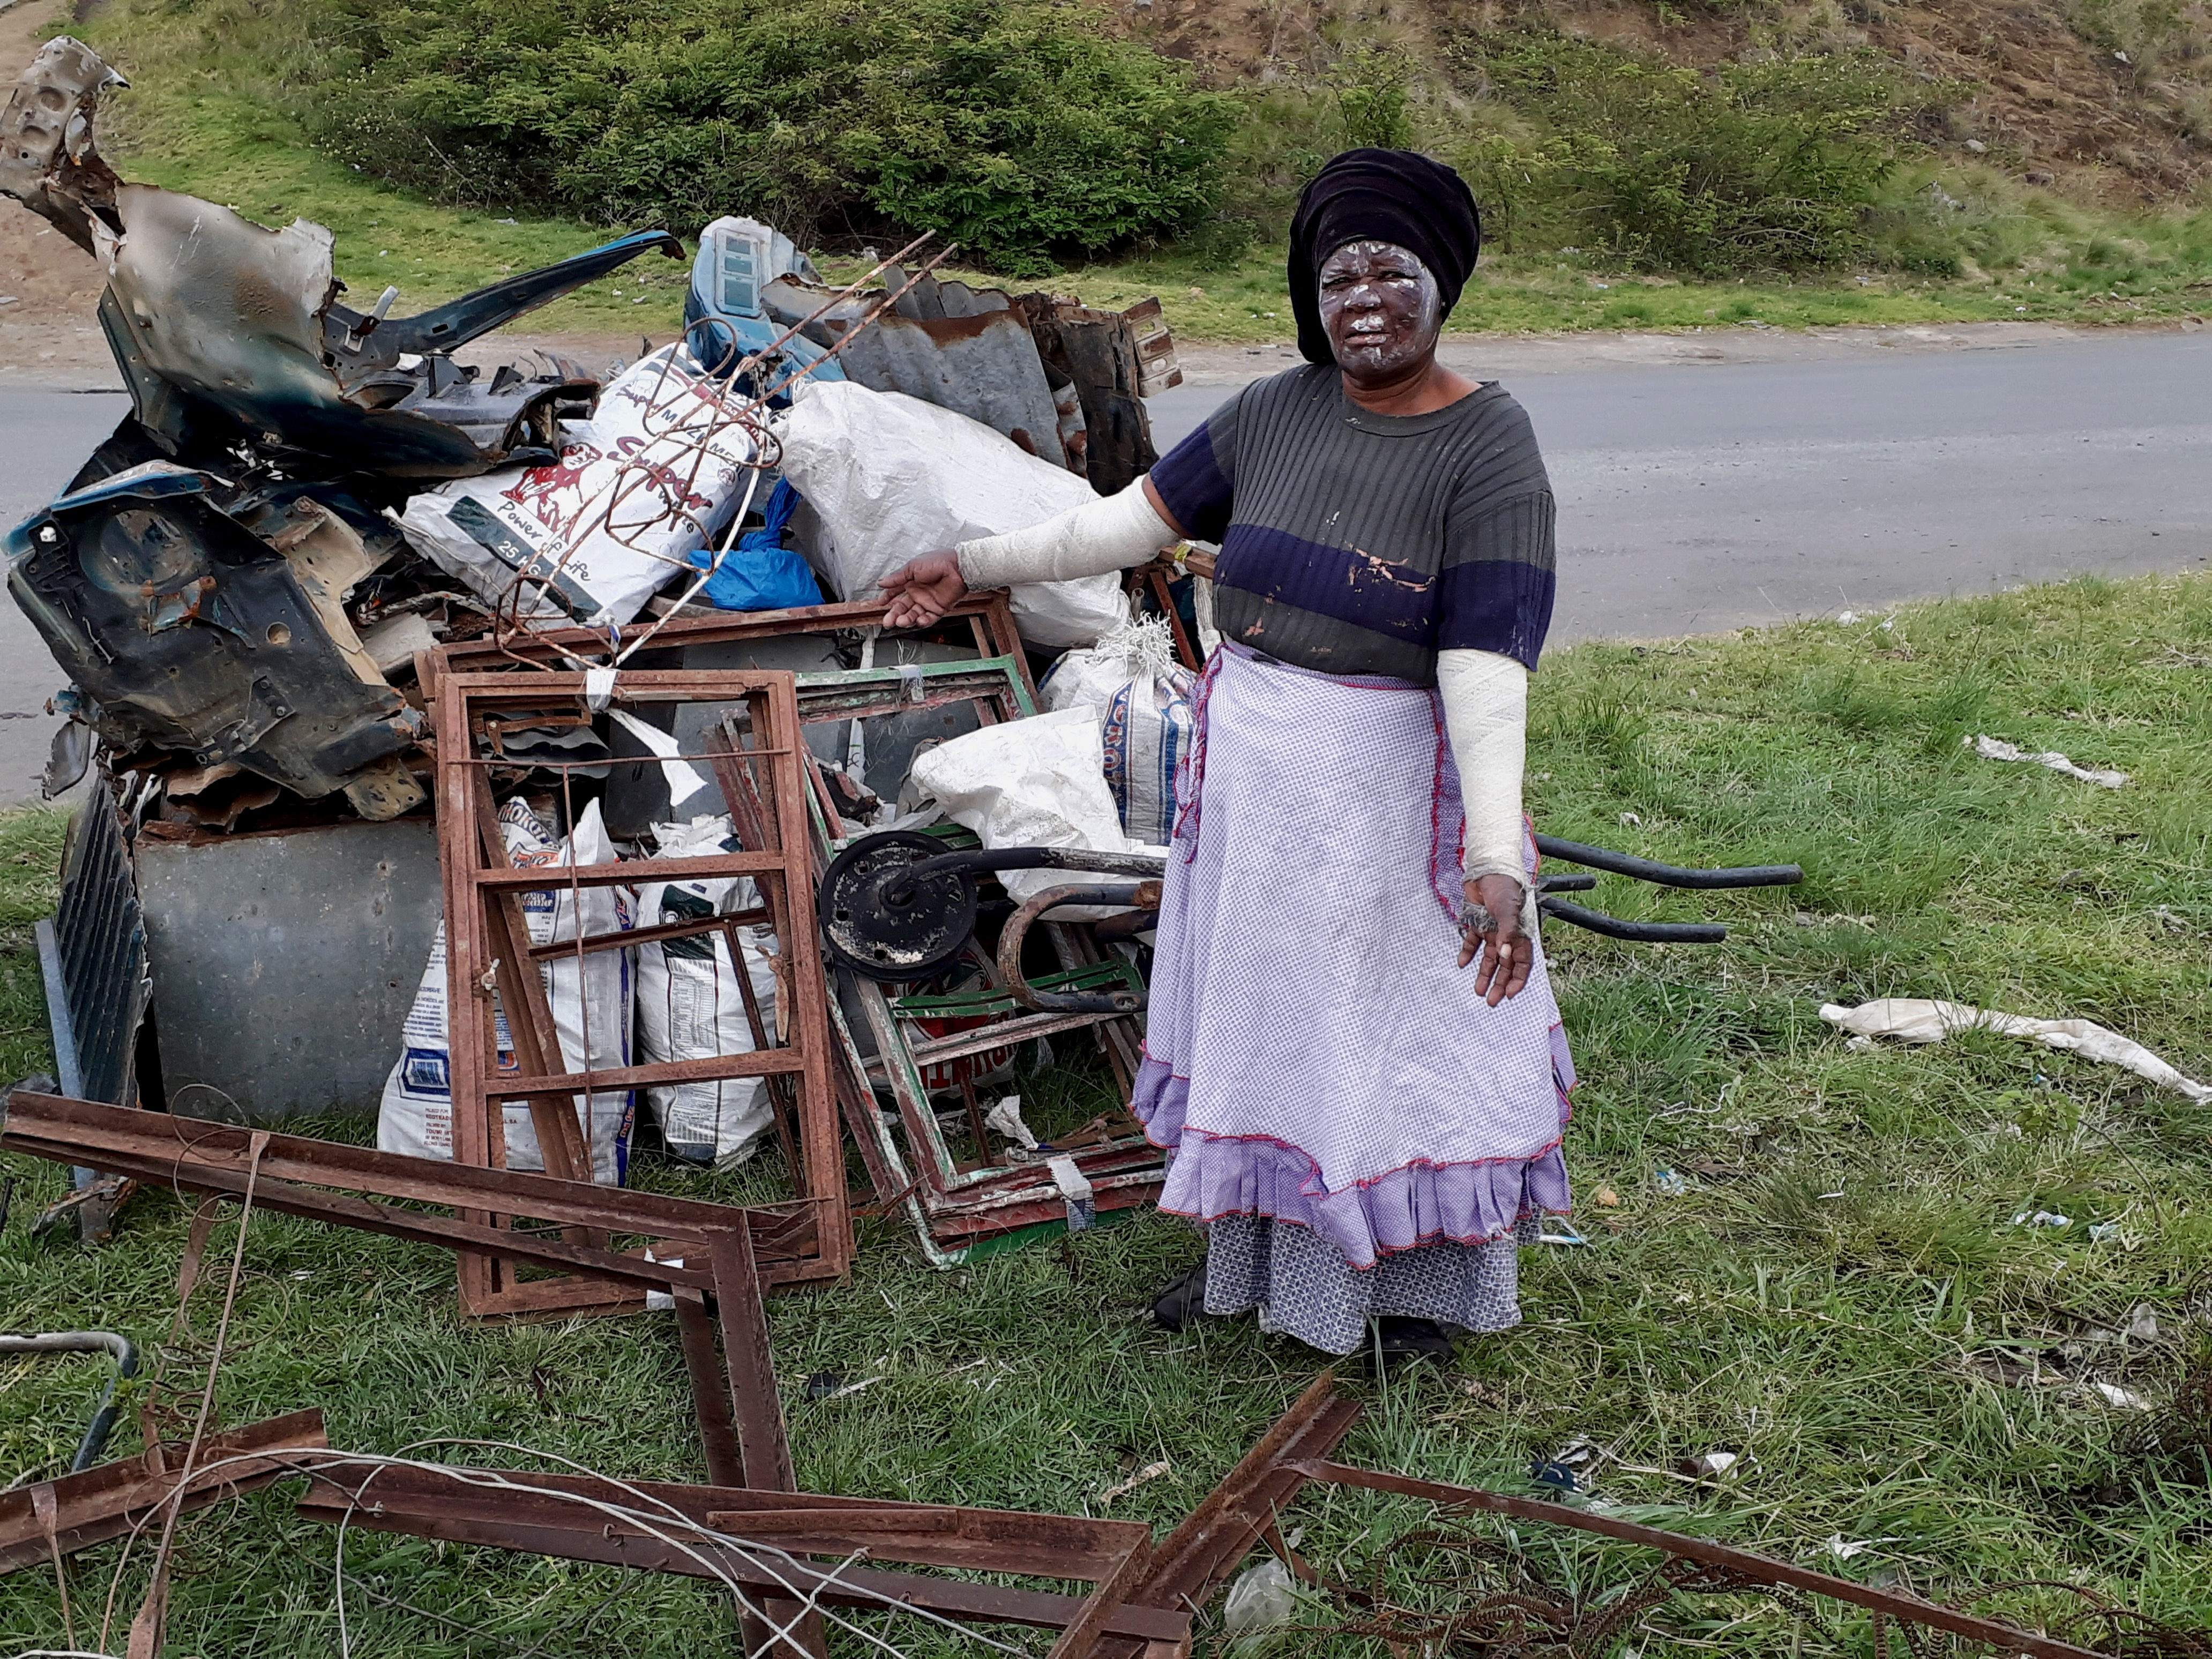 69-year-old woman scrap collector sleeps by the roadside